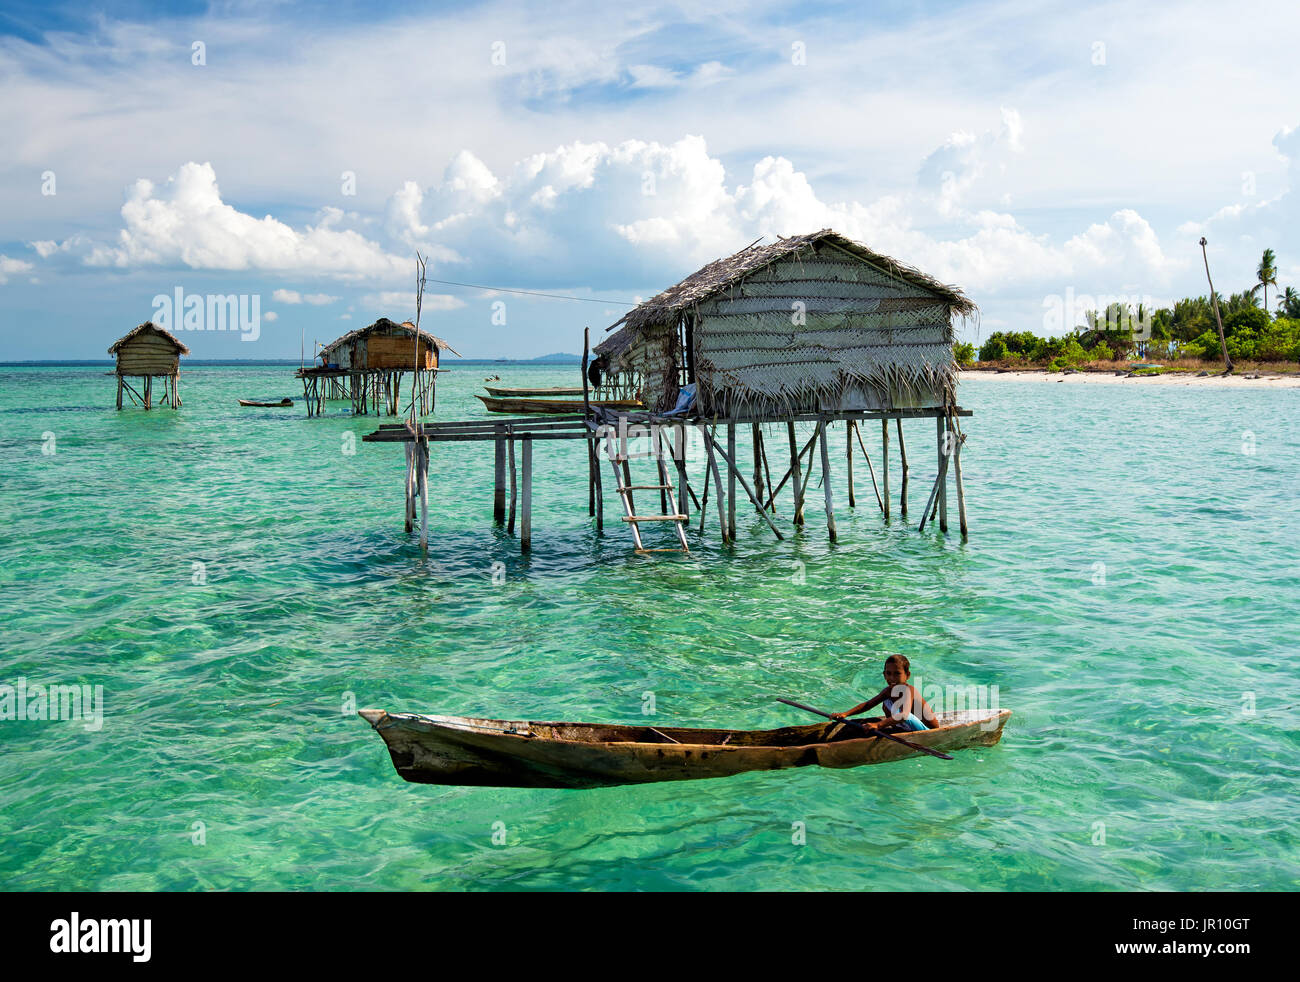 Semporna, Malaysia - 18 April, 2015: Young Bajau laut boy paddling a boat near stilted houses off the coast of Borneo Stock Photo